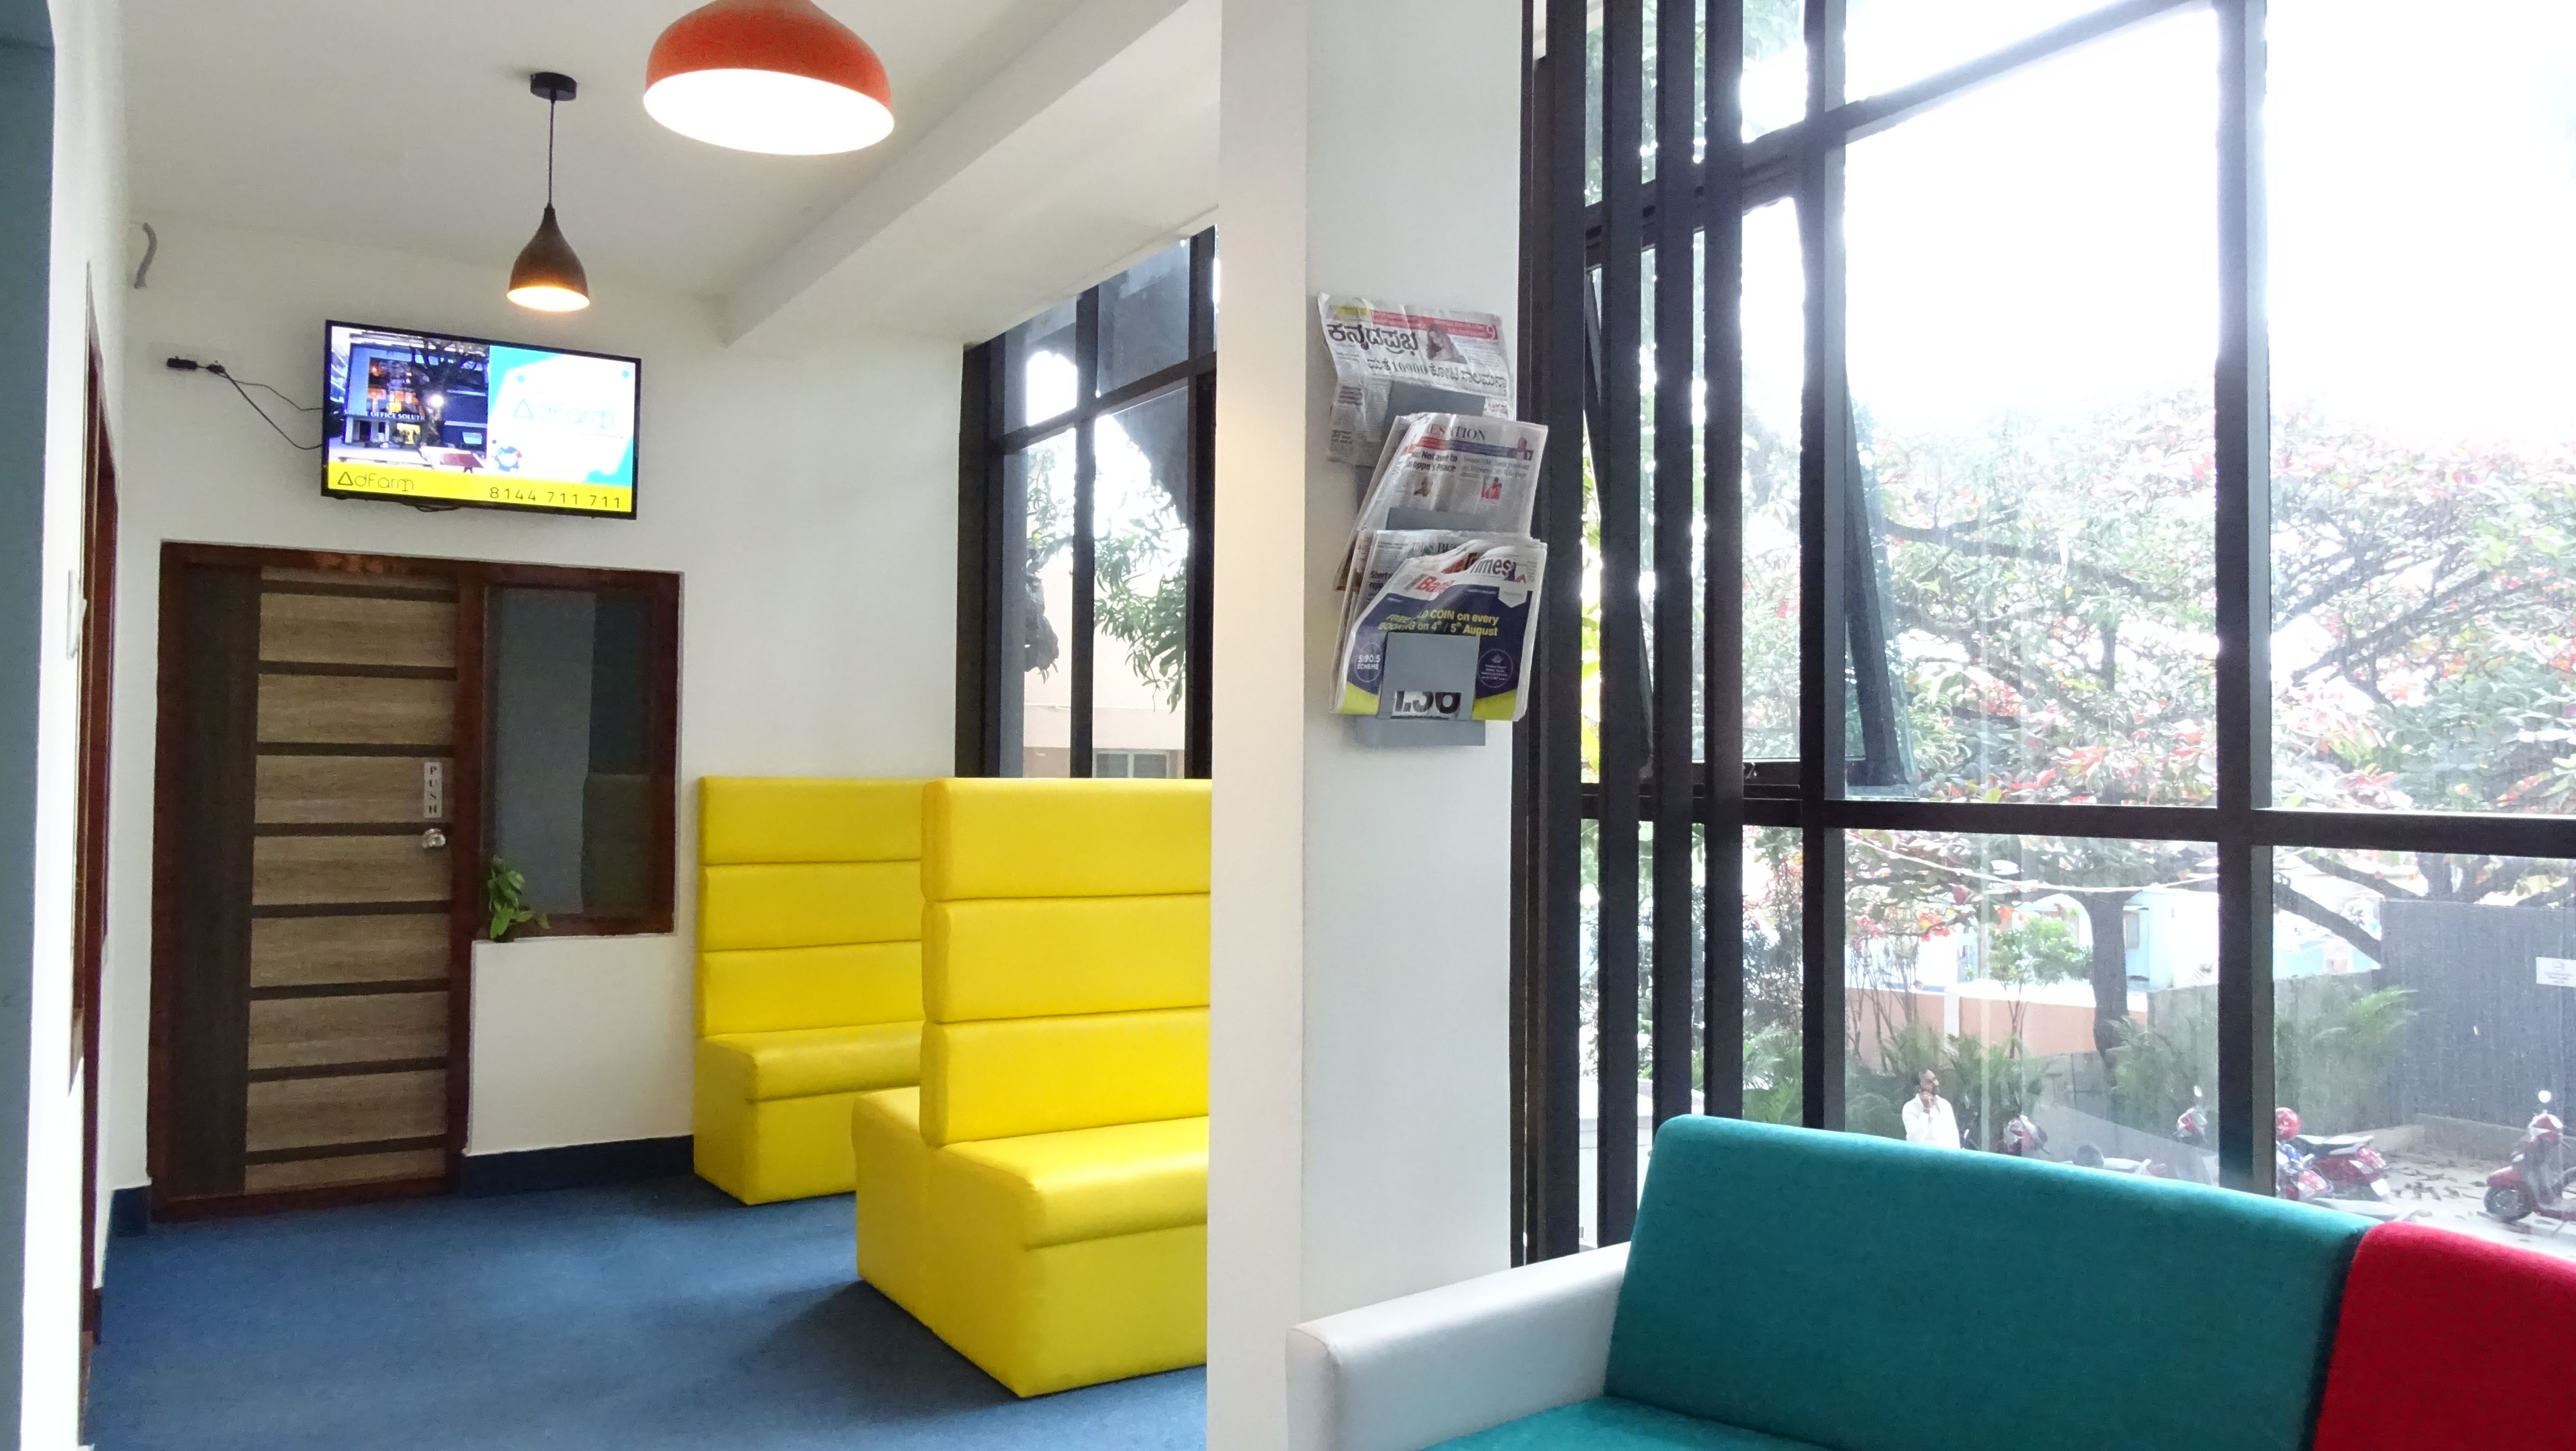 10 Seater Office Space On Rent In Bangalore Cool Office Space Office Space Decor Coworking Space